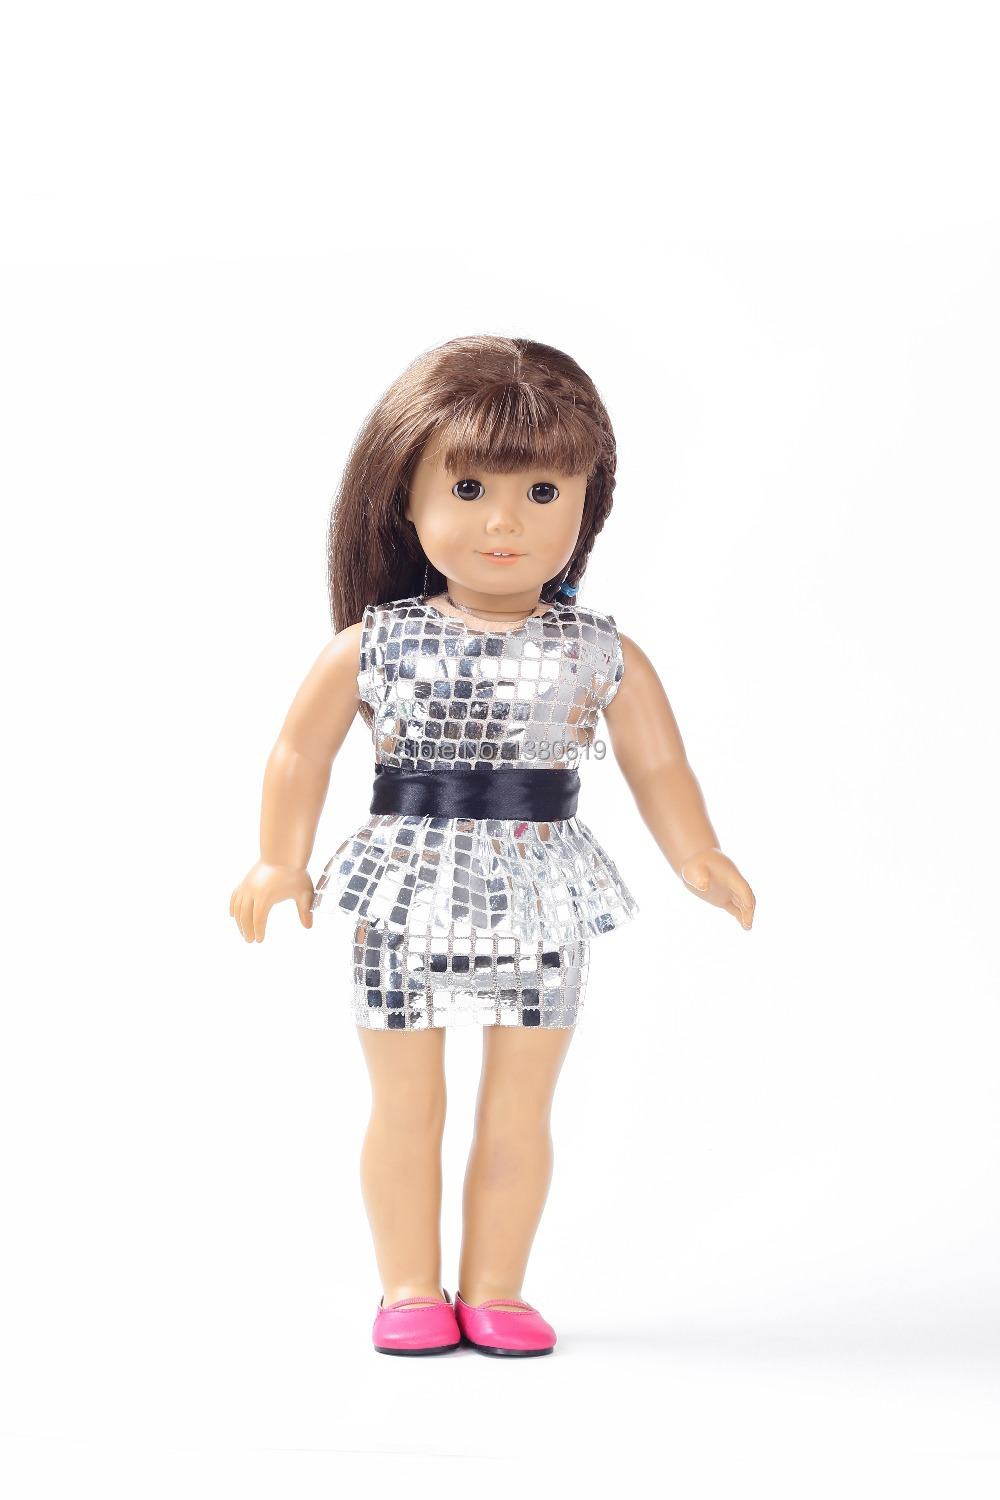 Free shipping!!! hot 2014 Christmas giftnew style Popular 18 American girl doll clothes/dress w127<br><br>Aliexpress